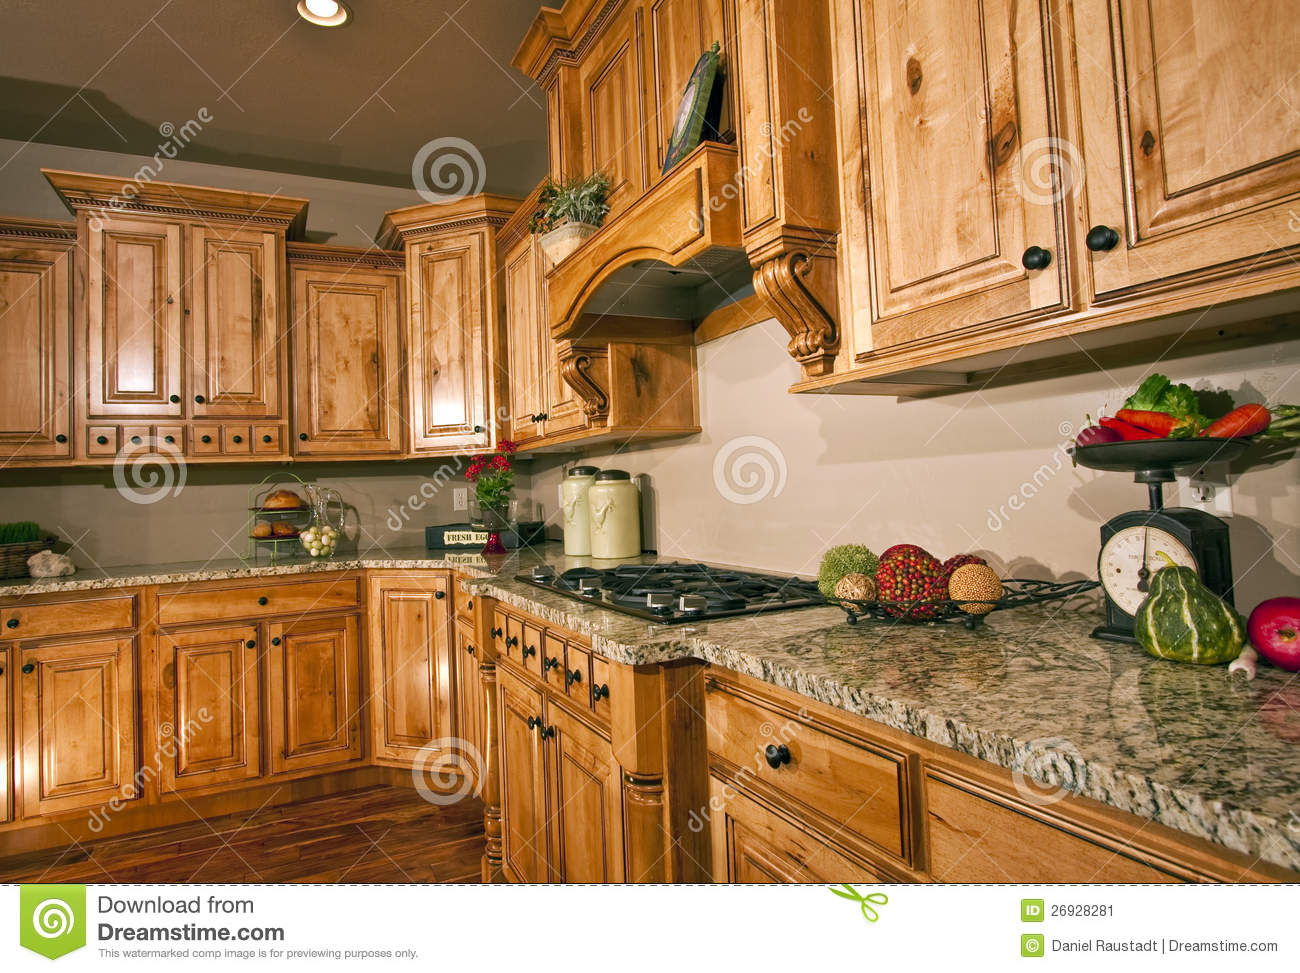 Spacious modern luxury kitchen cabinetry stock image image 26928281 - Modern luxury kitchen with granite countertop ...